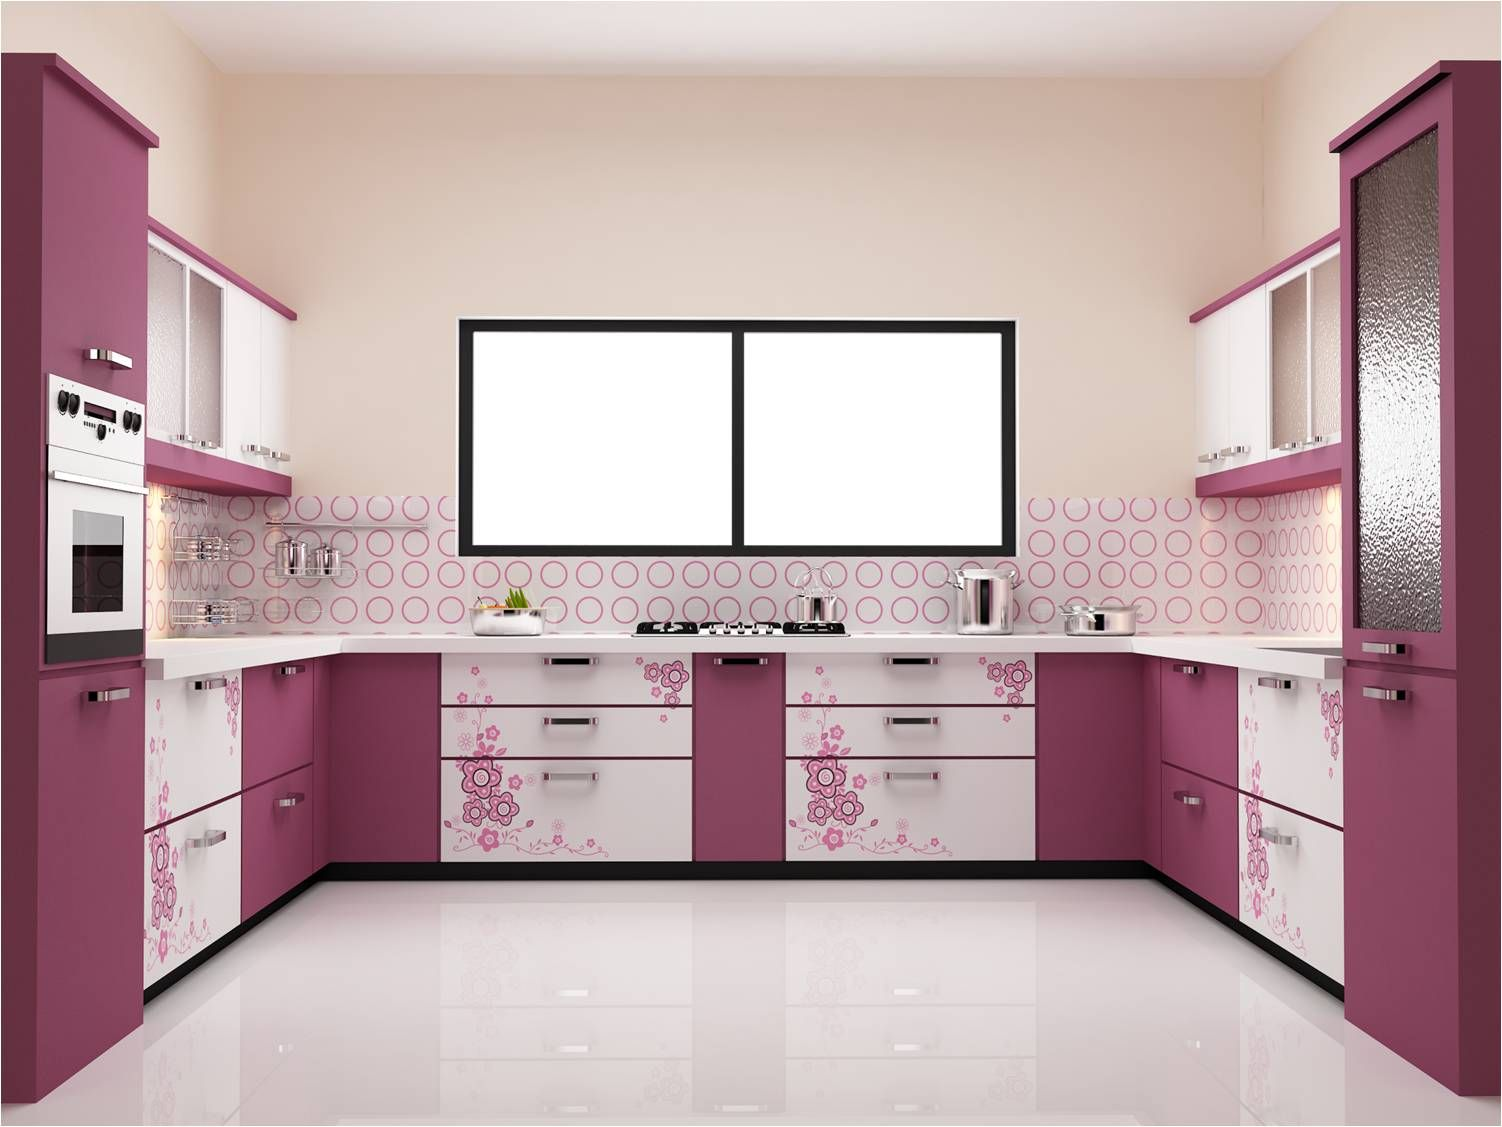 Simple Kitchen Interiors modern design kitchen designs - creditrestore